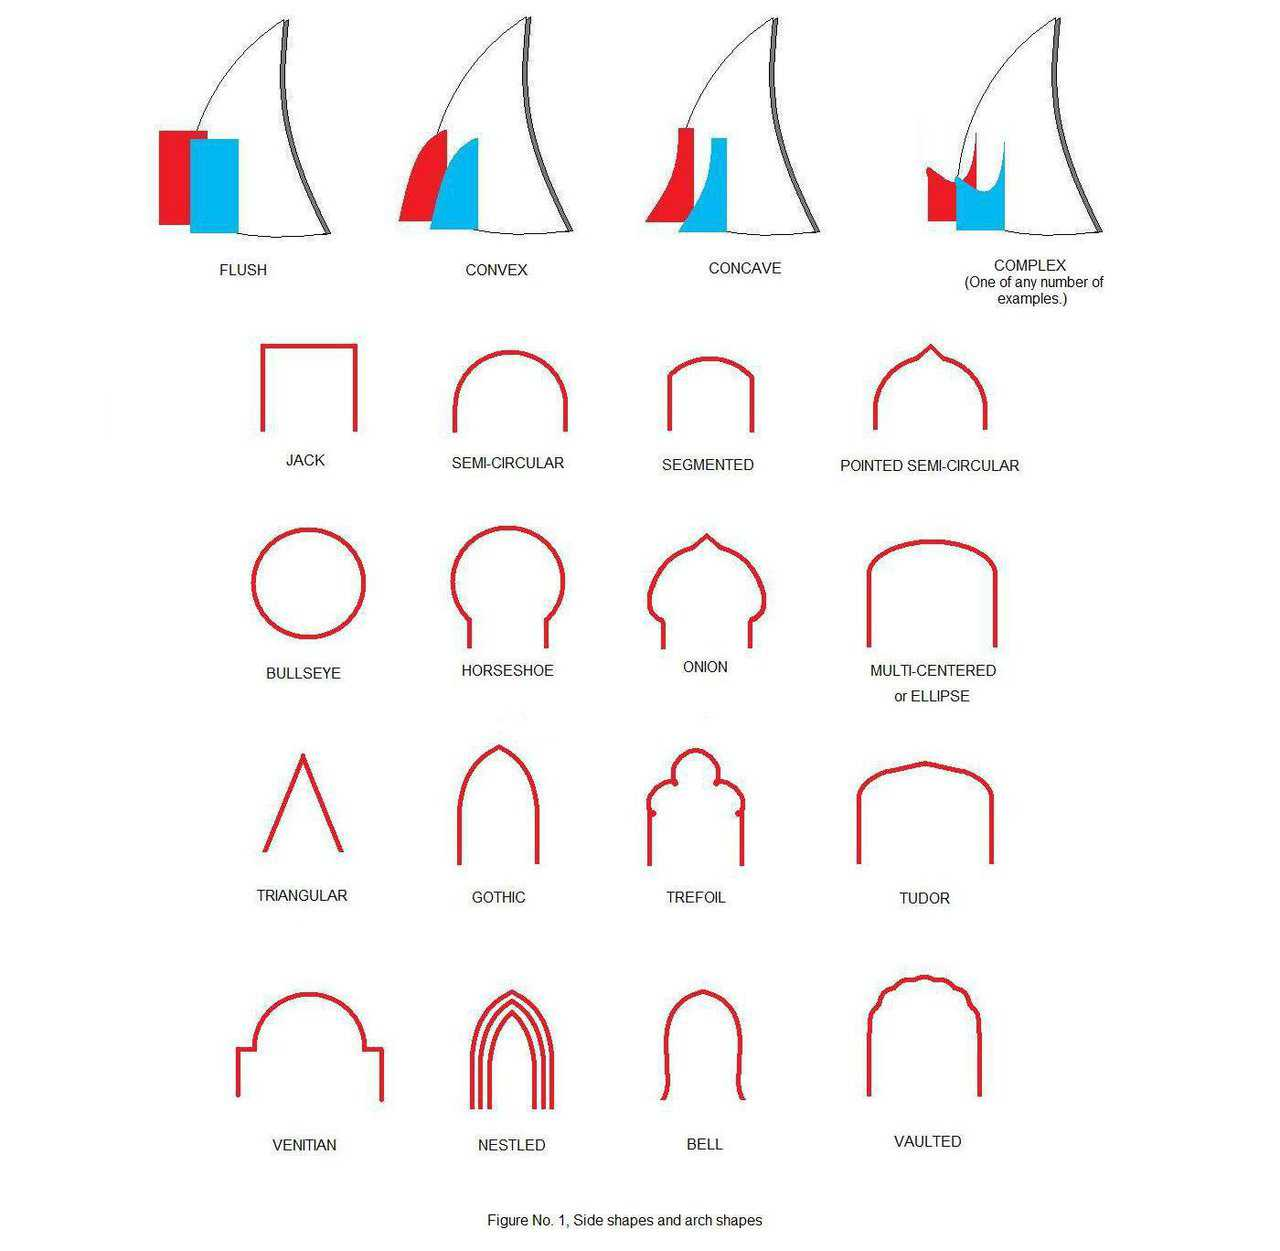 Side shapes and arch shapes